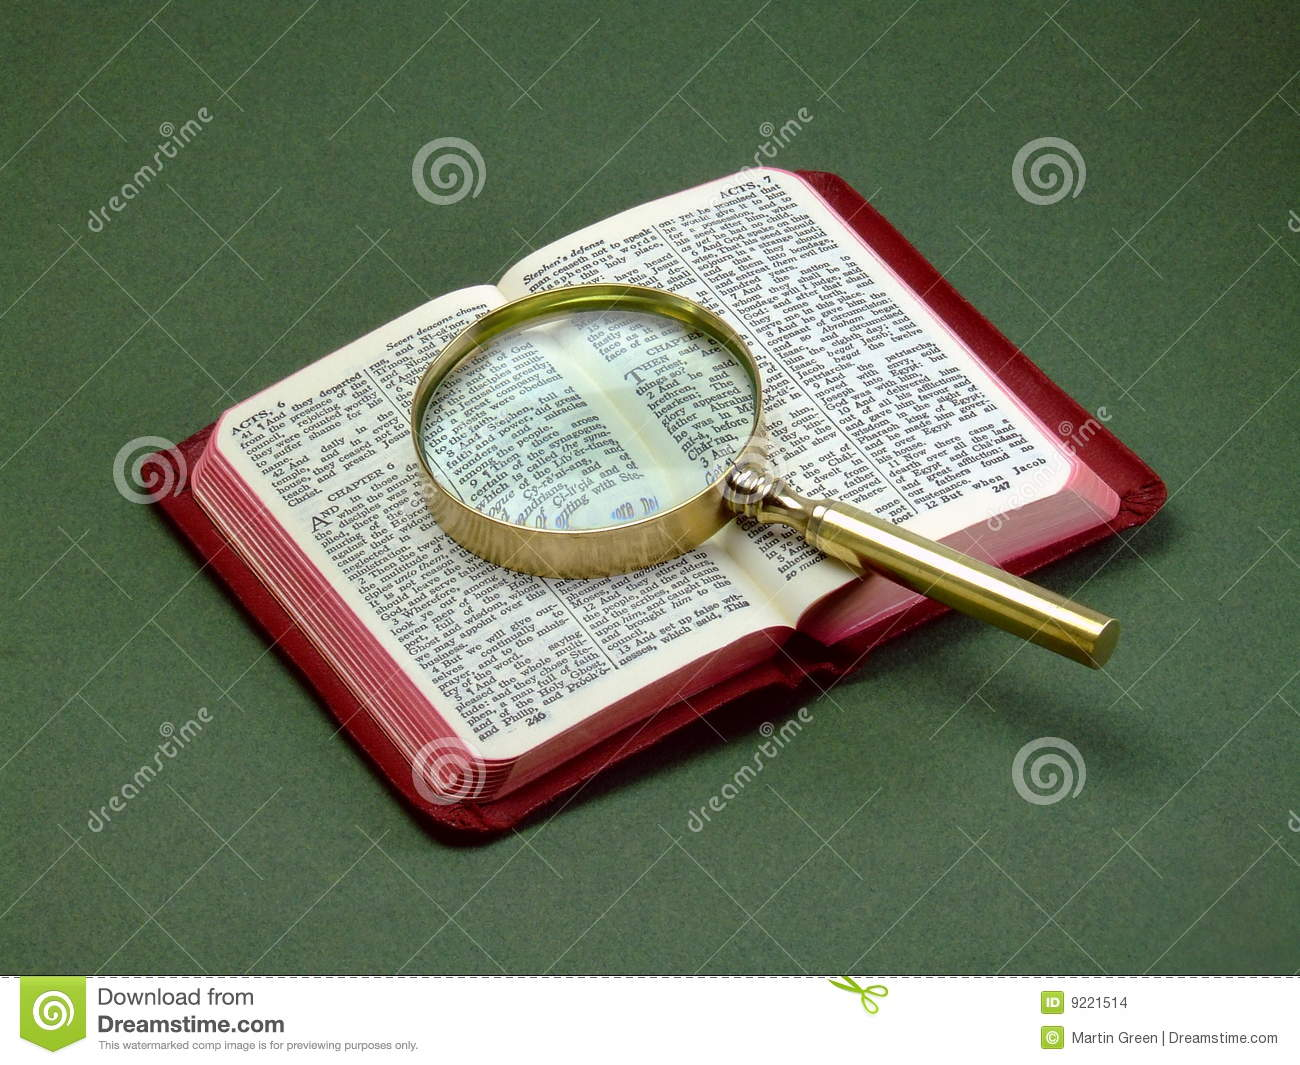 Book And Magnifying Glass Stock Images - Image: 9221514 Closed Book Silhouette